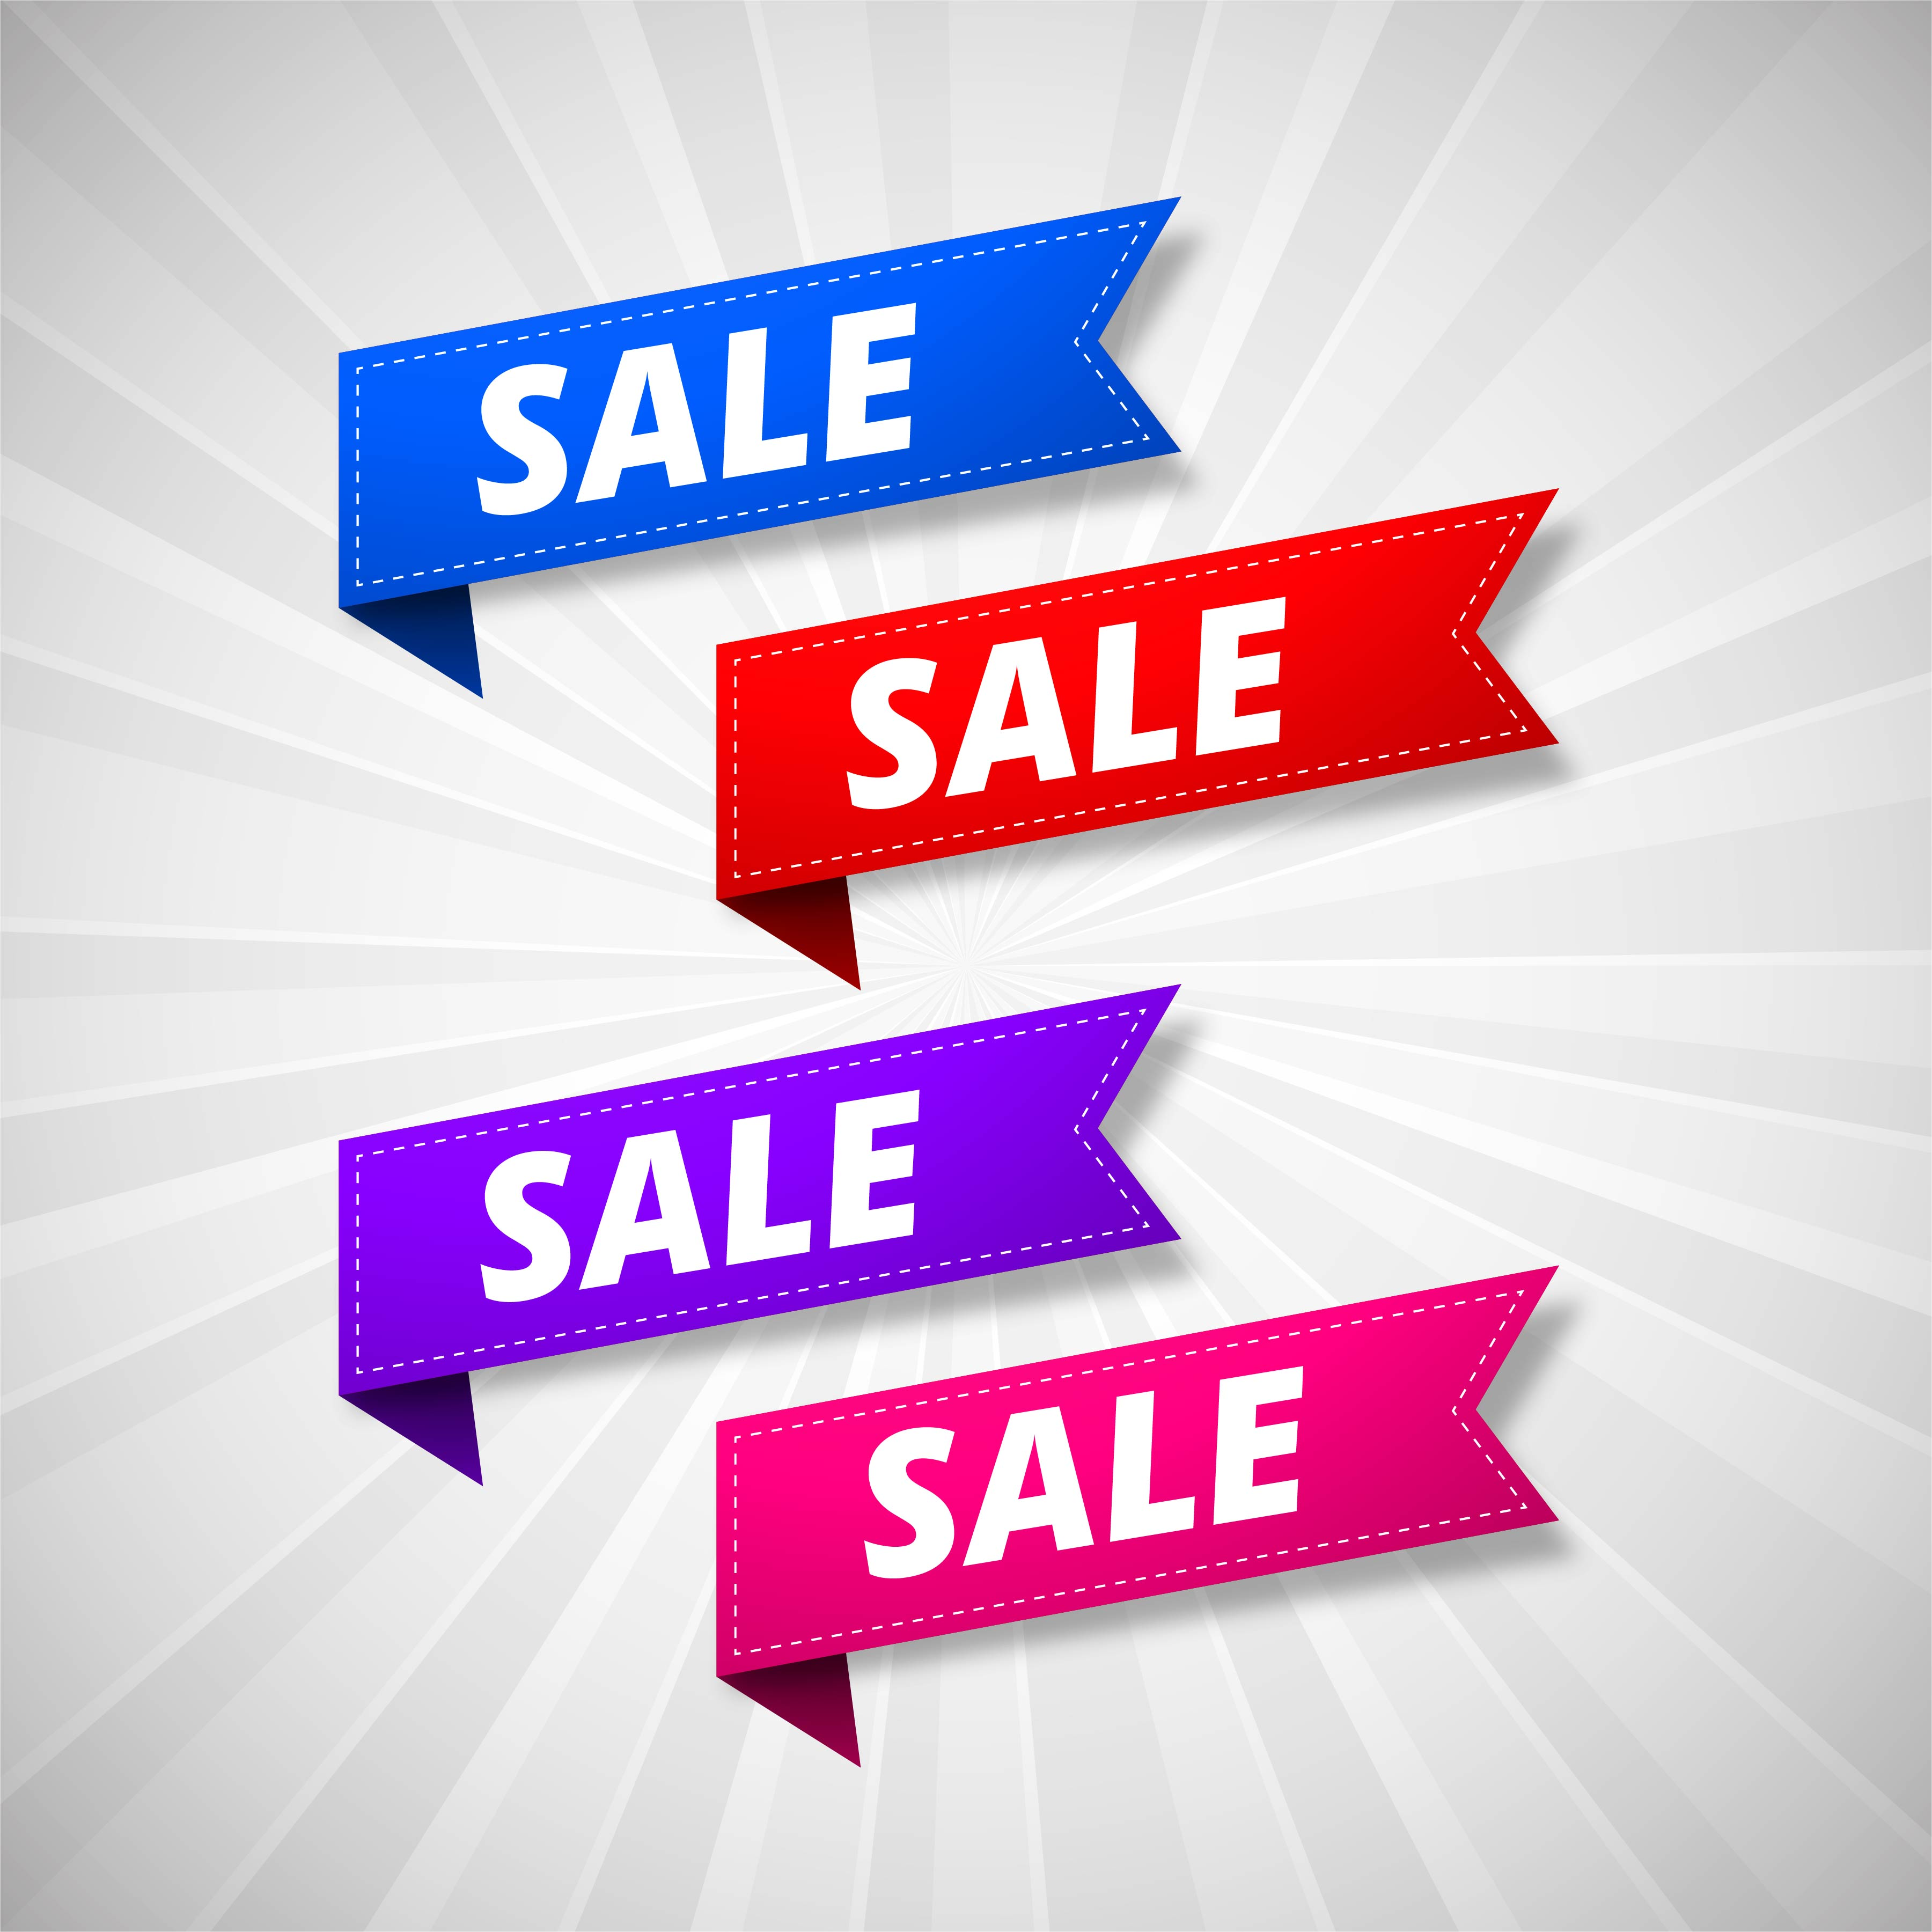 Modern big sale banner design download free vectors for Sale moderne